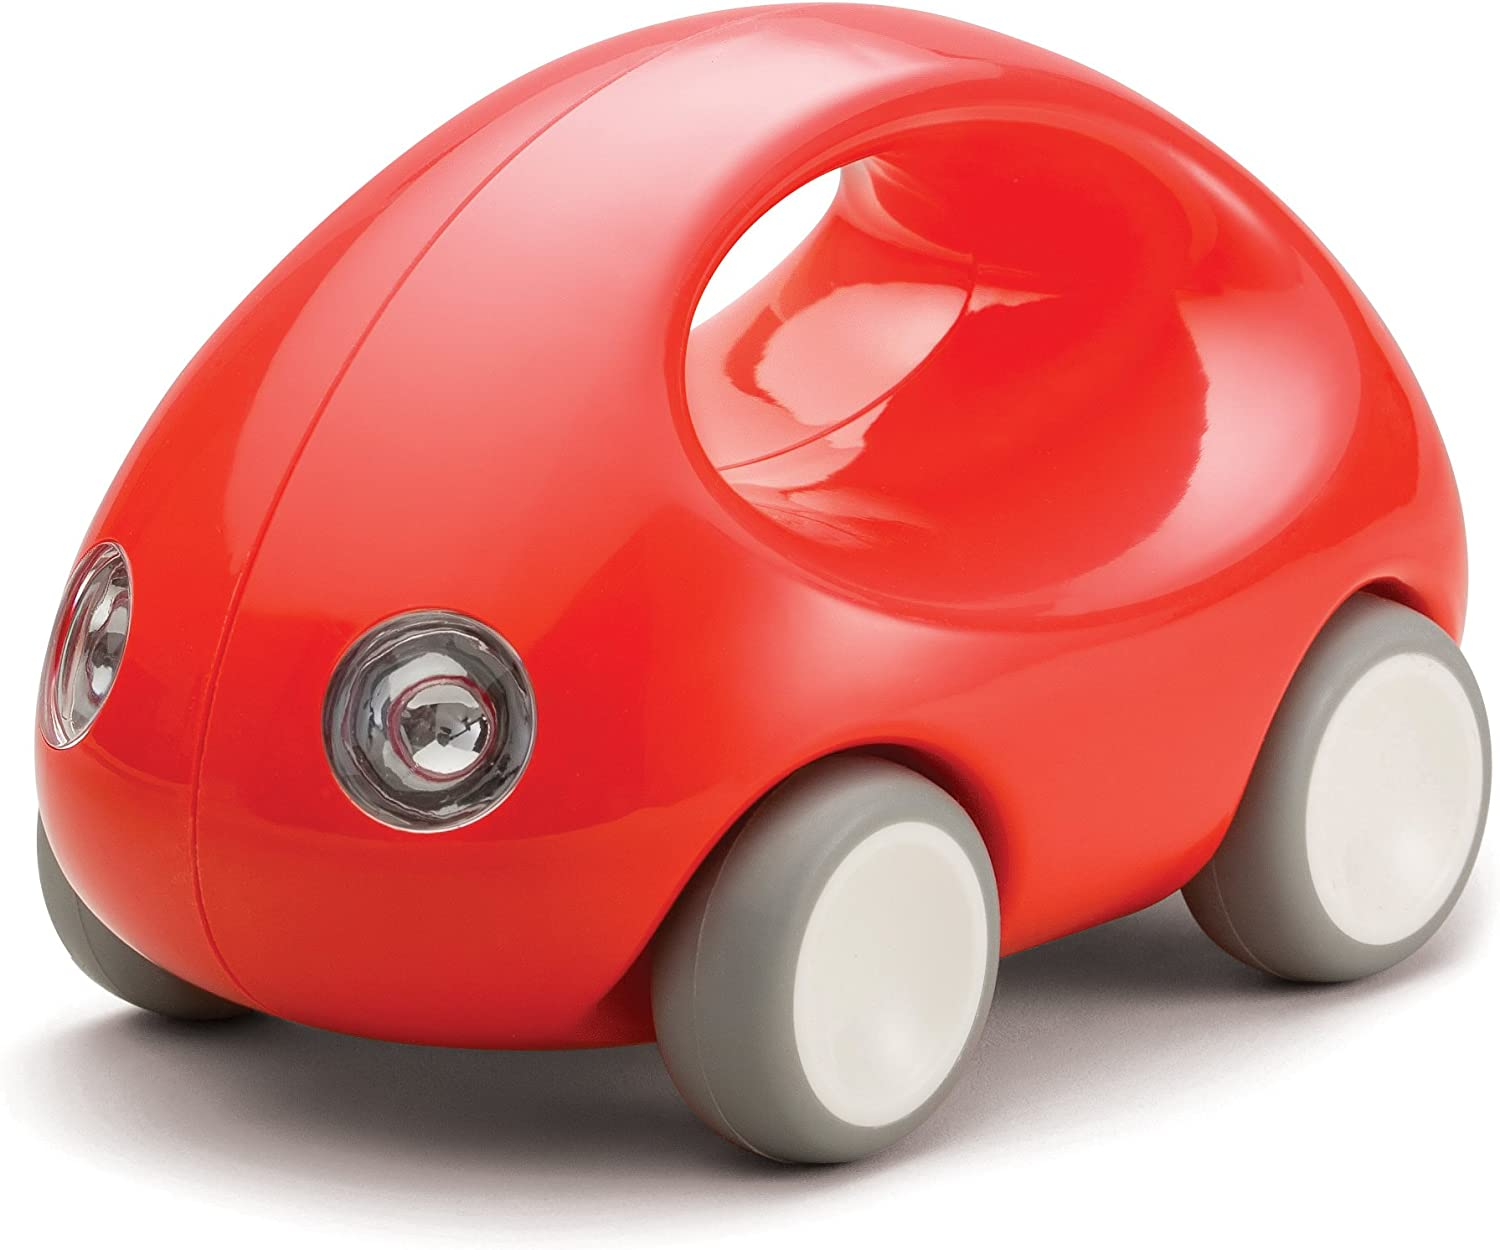 Kid O Go Car Early Learning Push Toy Red 5 popular - Pull Manufacturer regenerated product